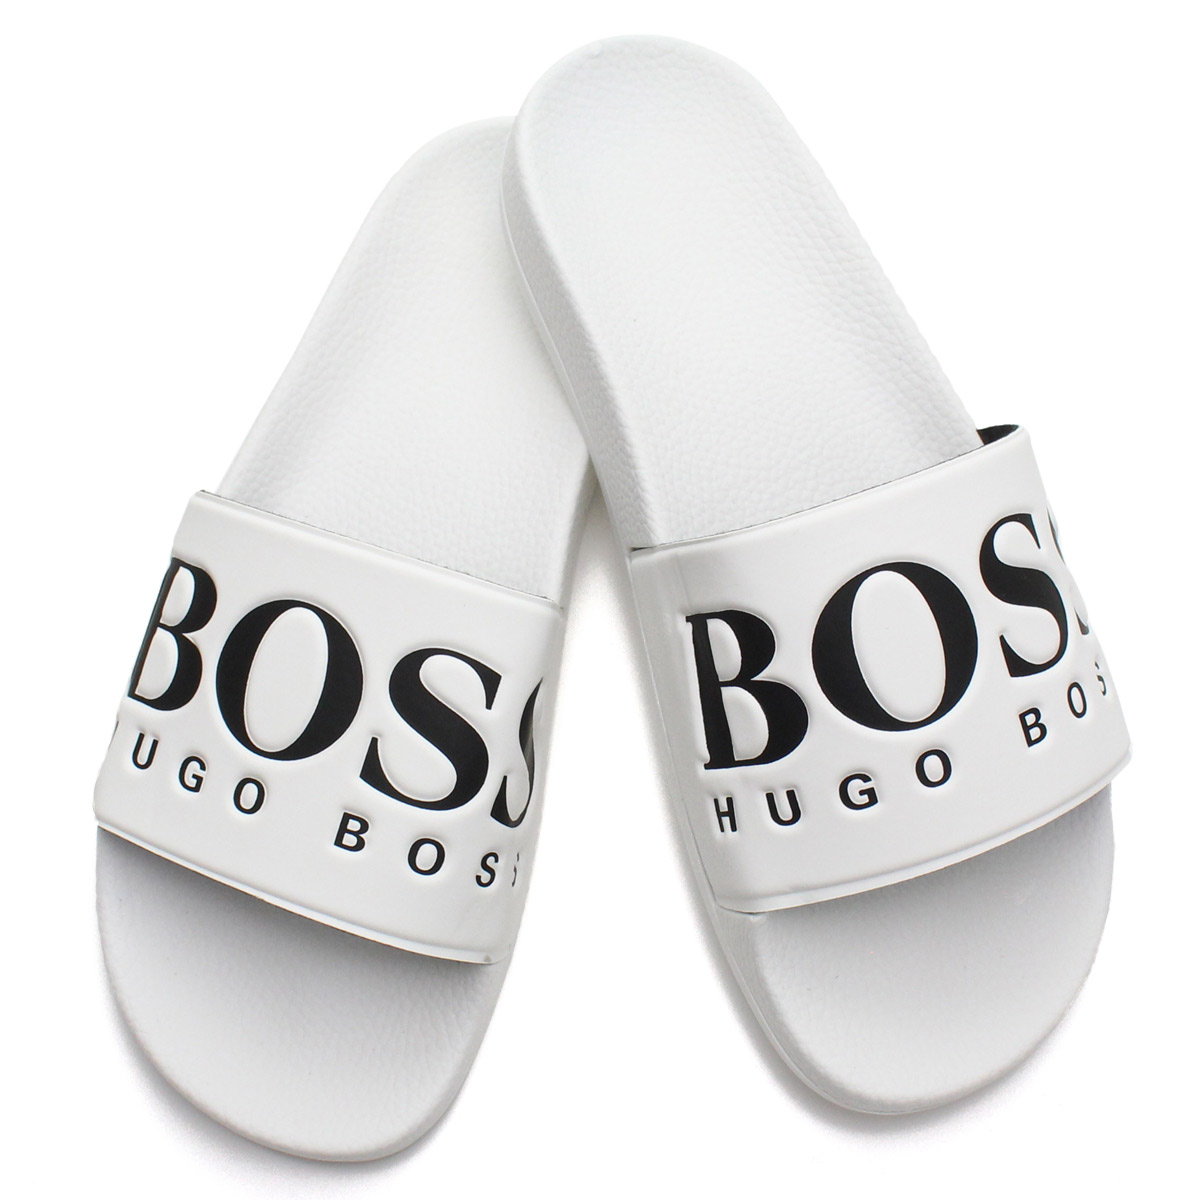 7929f352ff08a It is a shower sandal of Hugo Boss. Even a beach and the poolside are sure  to get activity by a synthetic resin with the thickness resisting the water  wet ...